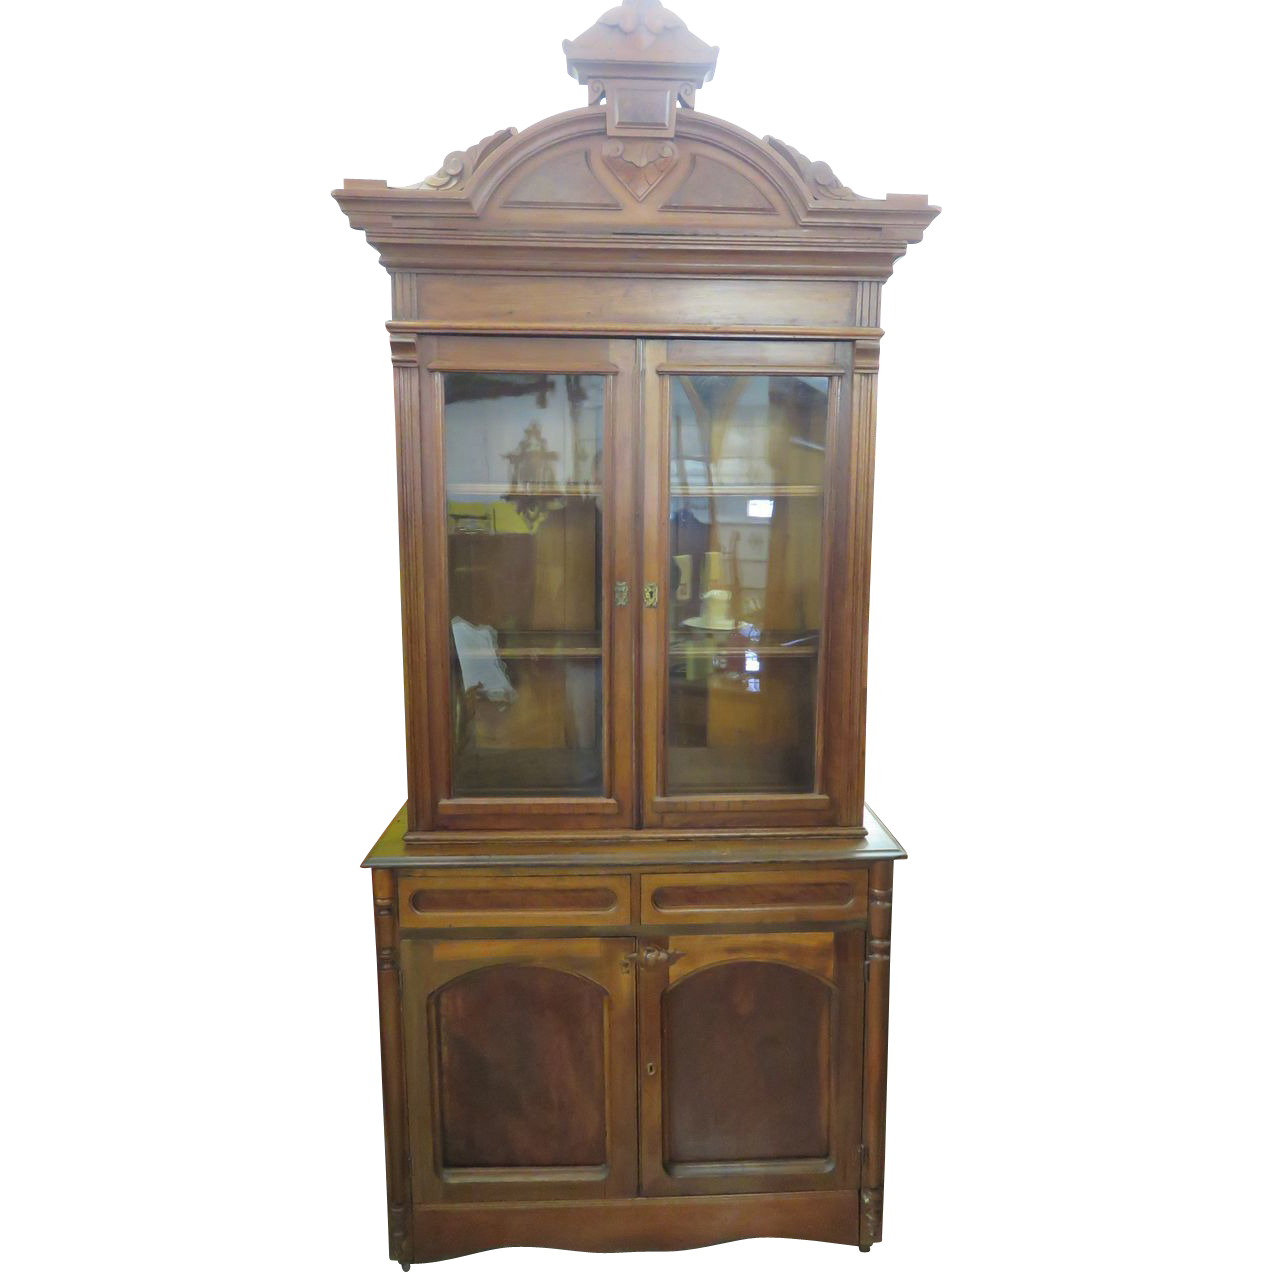 524387950331614895 further munity Hospitality furthermore American Of Martinsville Furniture in addition Antique Brown Polished Designer John White Wingcap Brogue besides Henkel Harris Furniture Highboy. on antique highboy dresser with doors